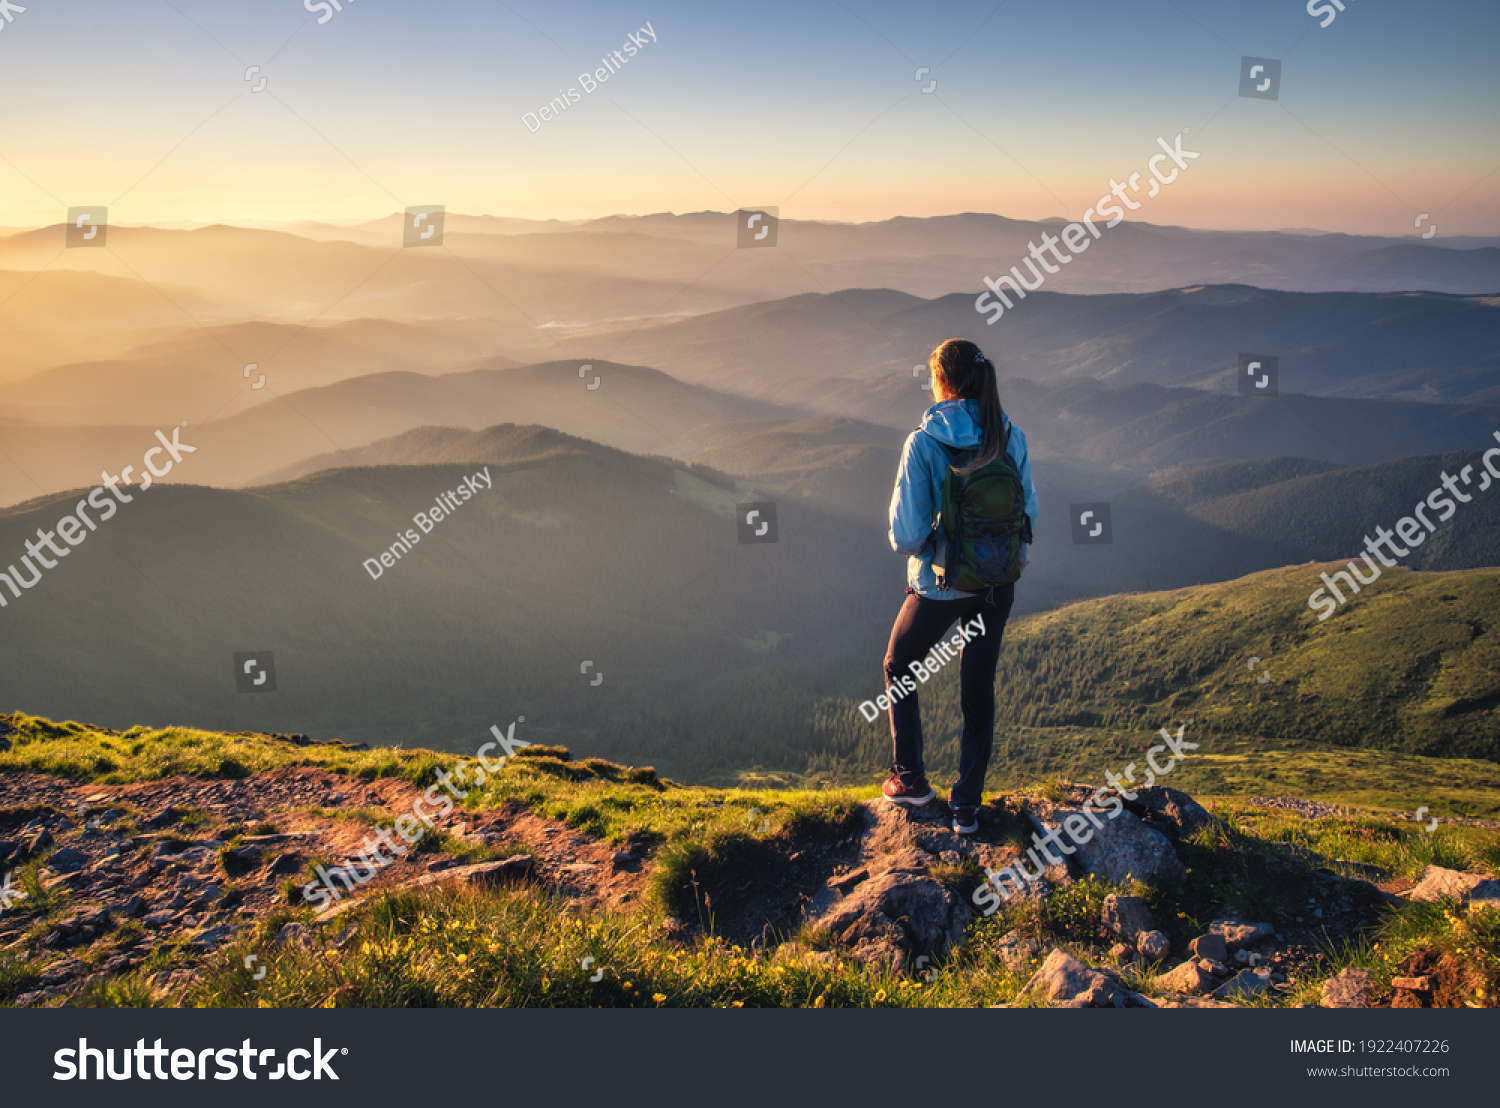 Girl on mountain peak with green grass looking at beautiful mountain valley in fog at sunset in summer. Landscape with sporty young woman, foggy hills, forest, sky. Travel and tourism. Hiking #1922407226